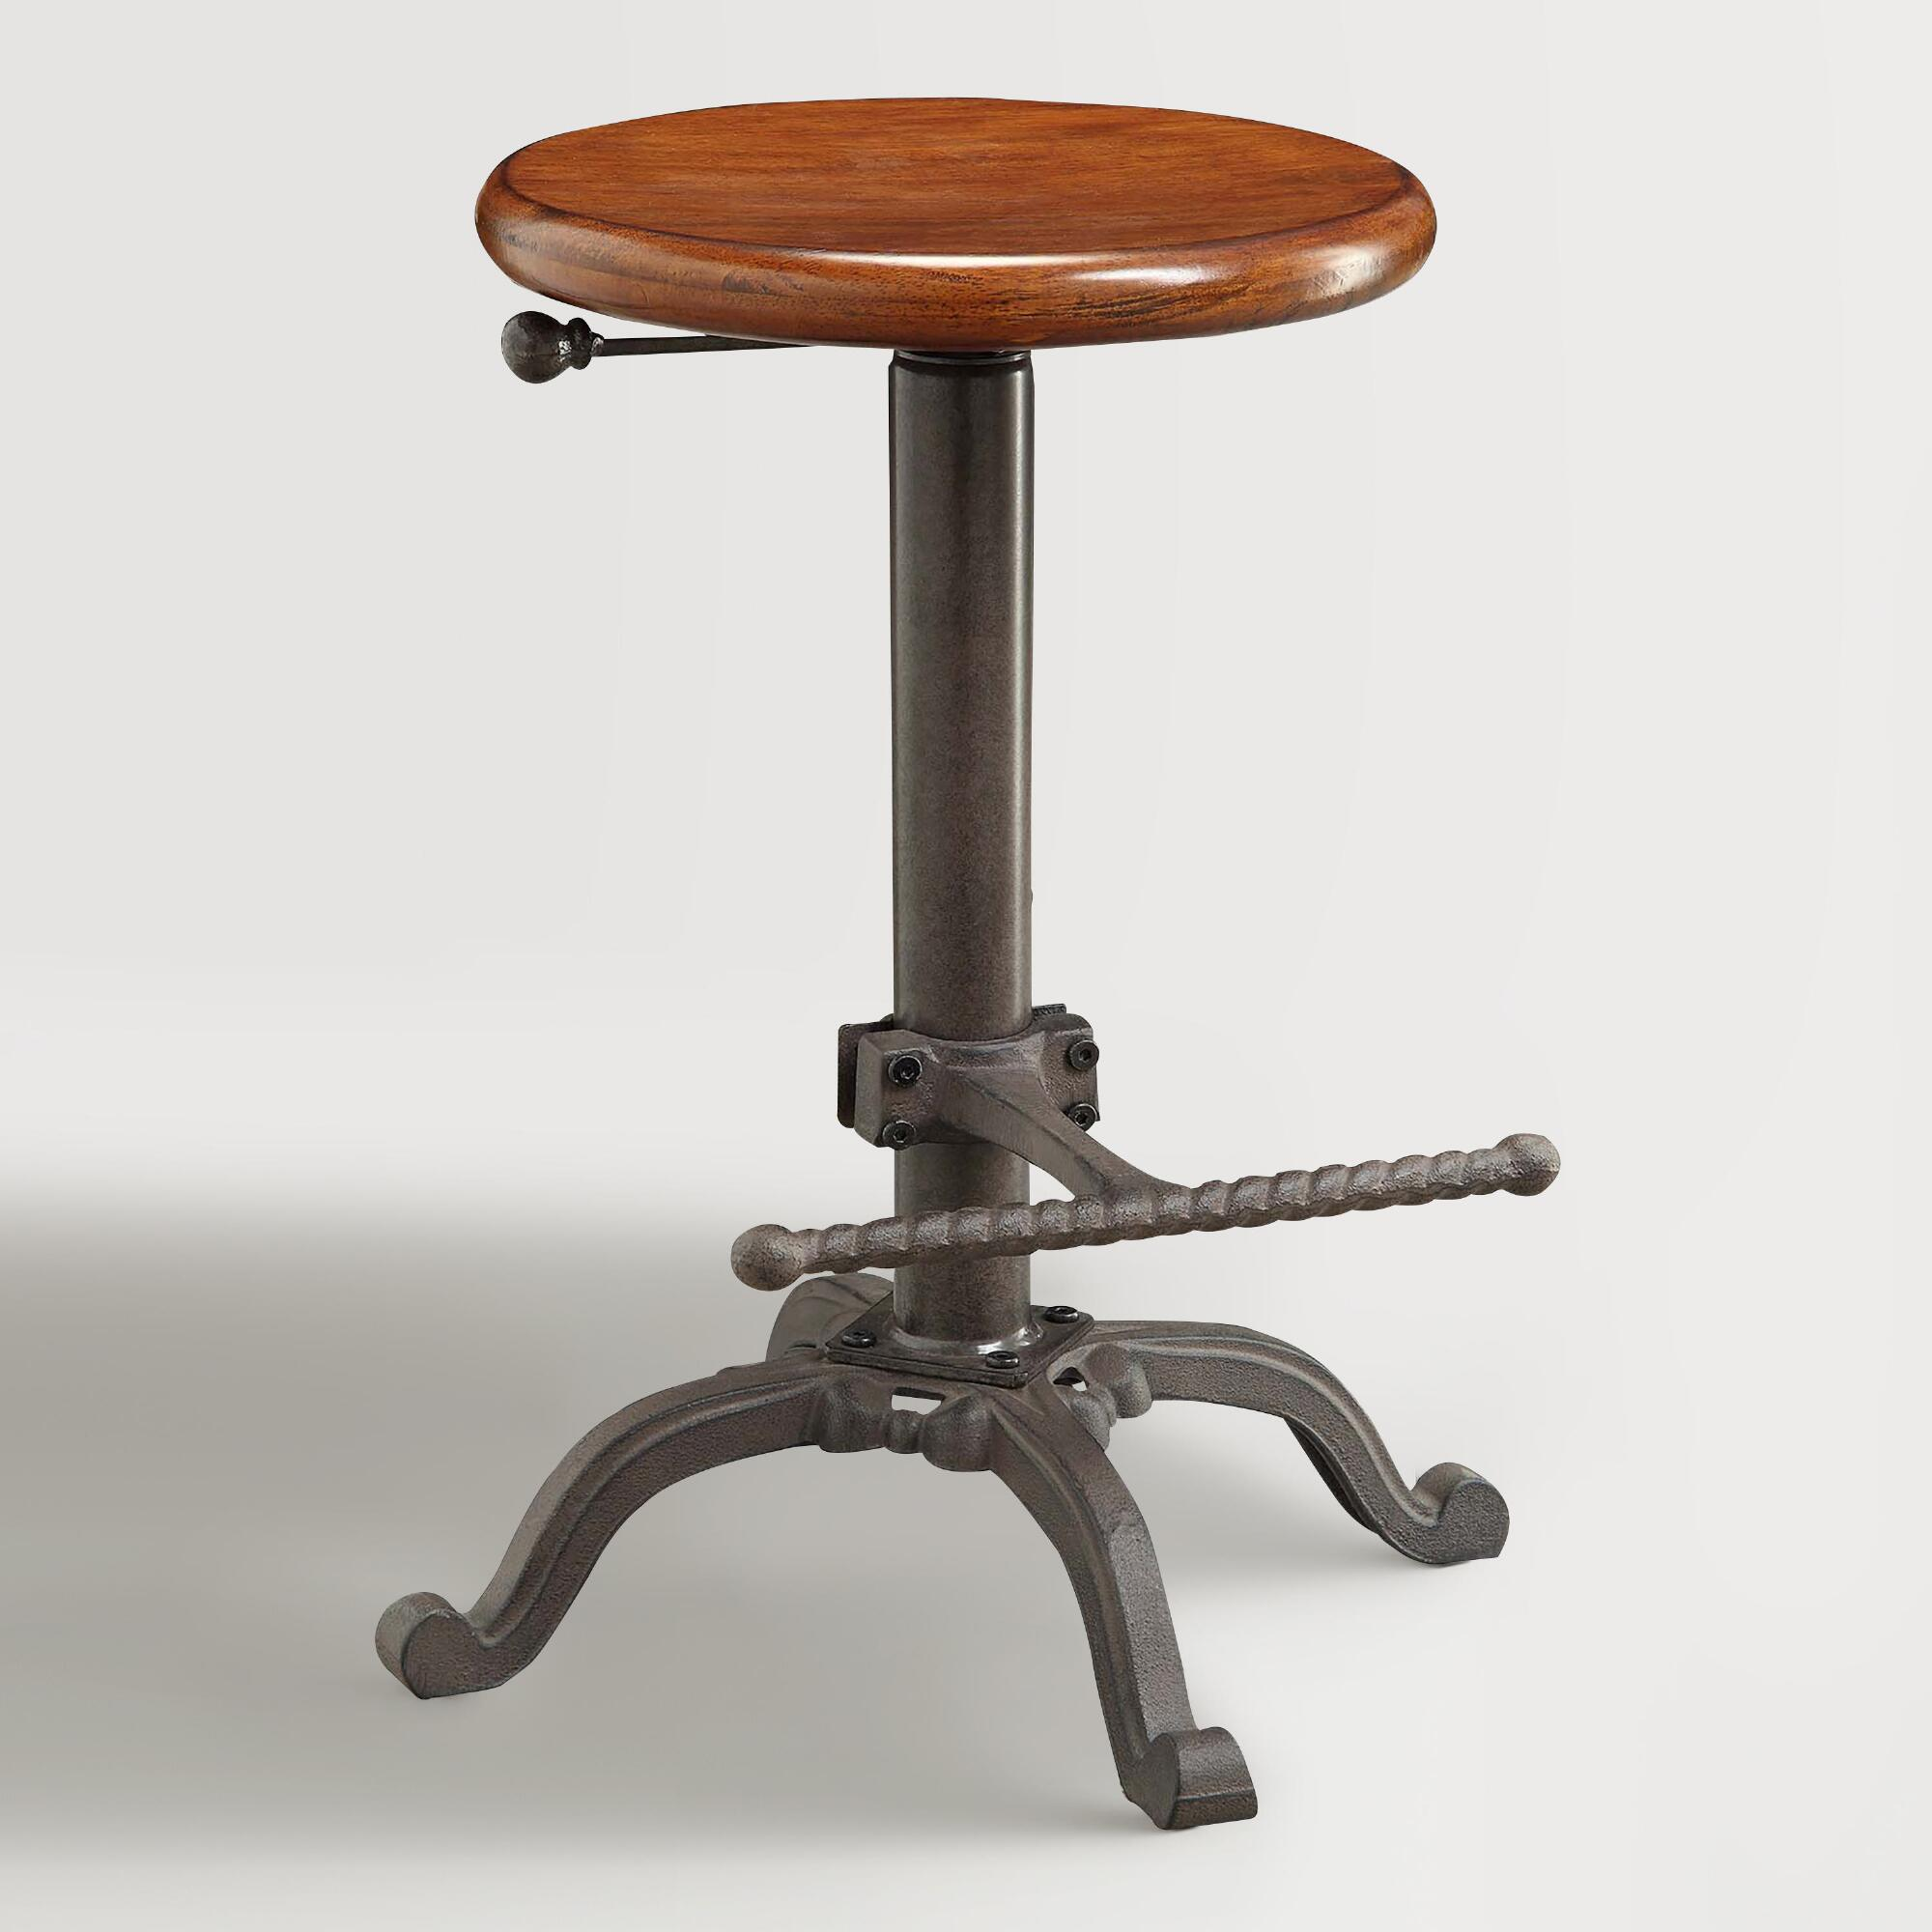 New Copper Metal Wood Counter Stool Kitchen Dining Bar: Wood And Metal Ezra Adjustable Stool